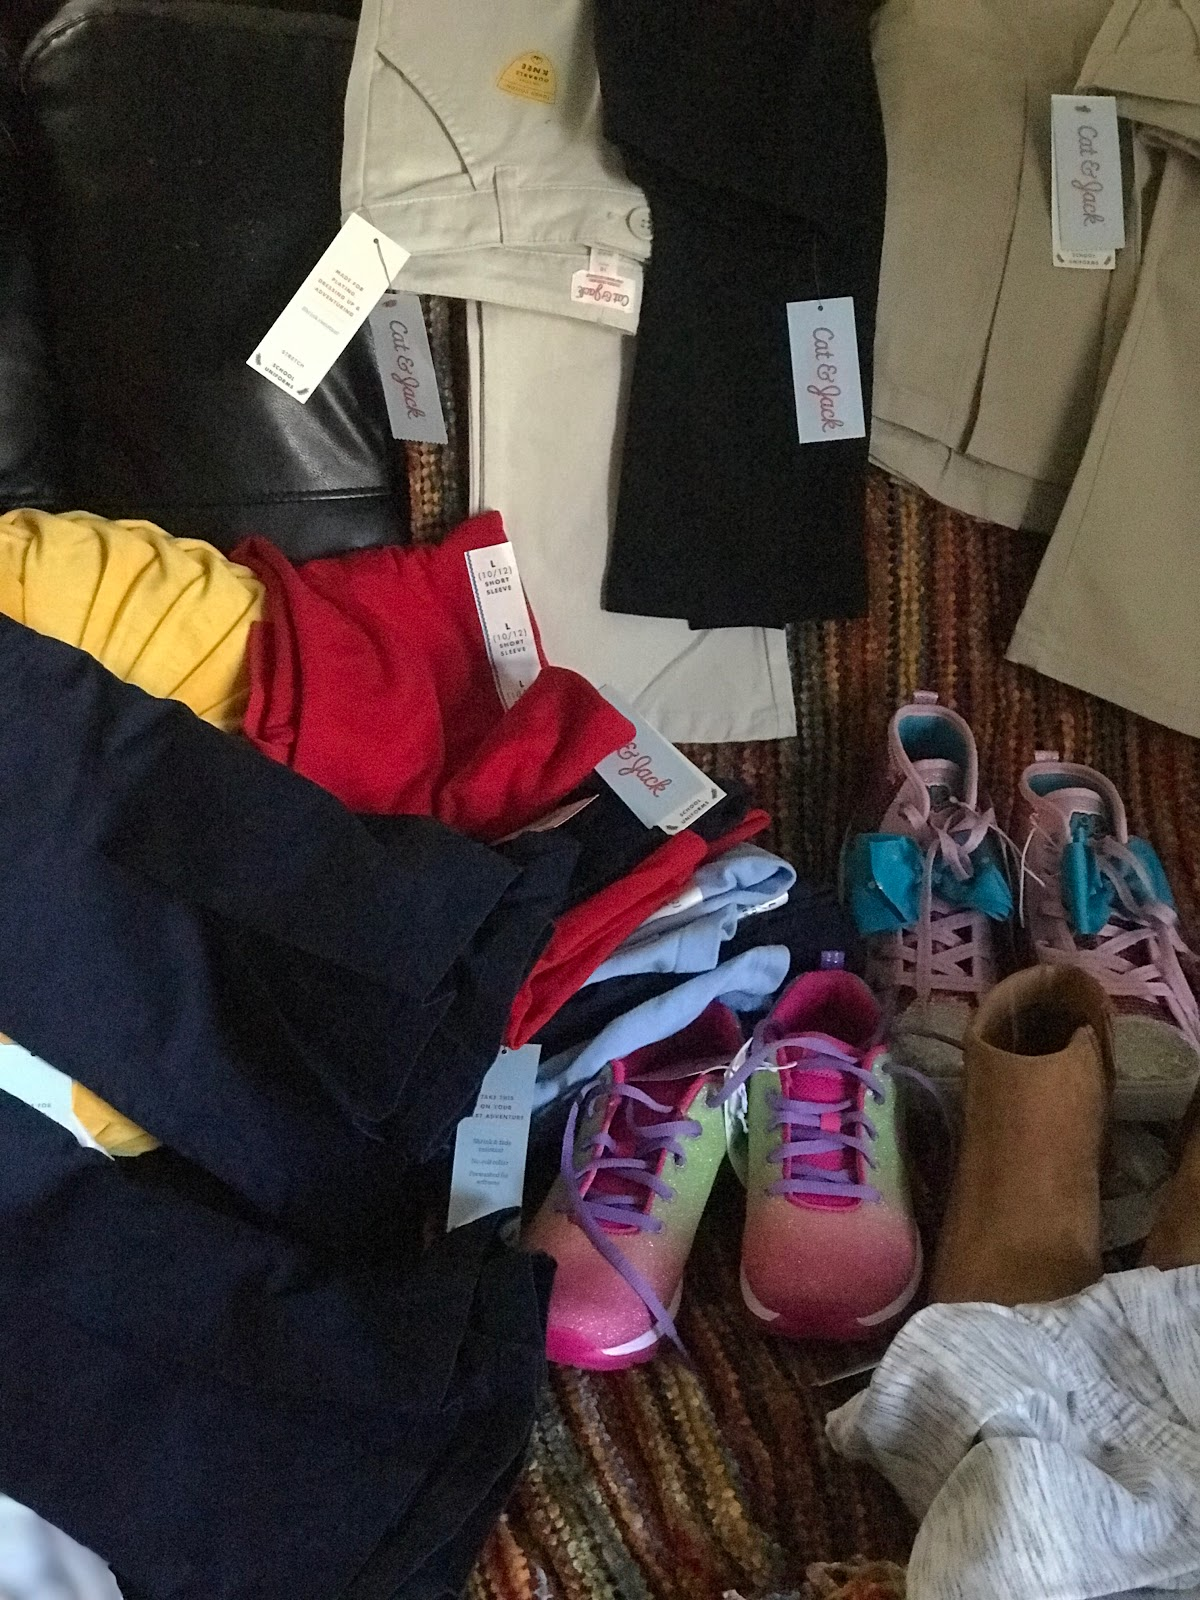 Image: All the things that were purchased by Tangie Bell for back to school shopping.